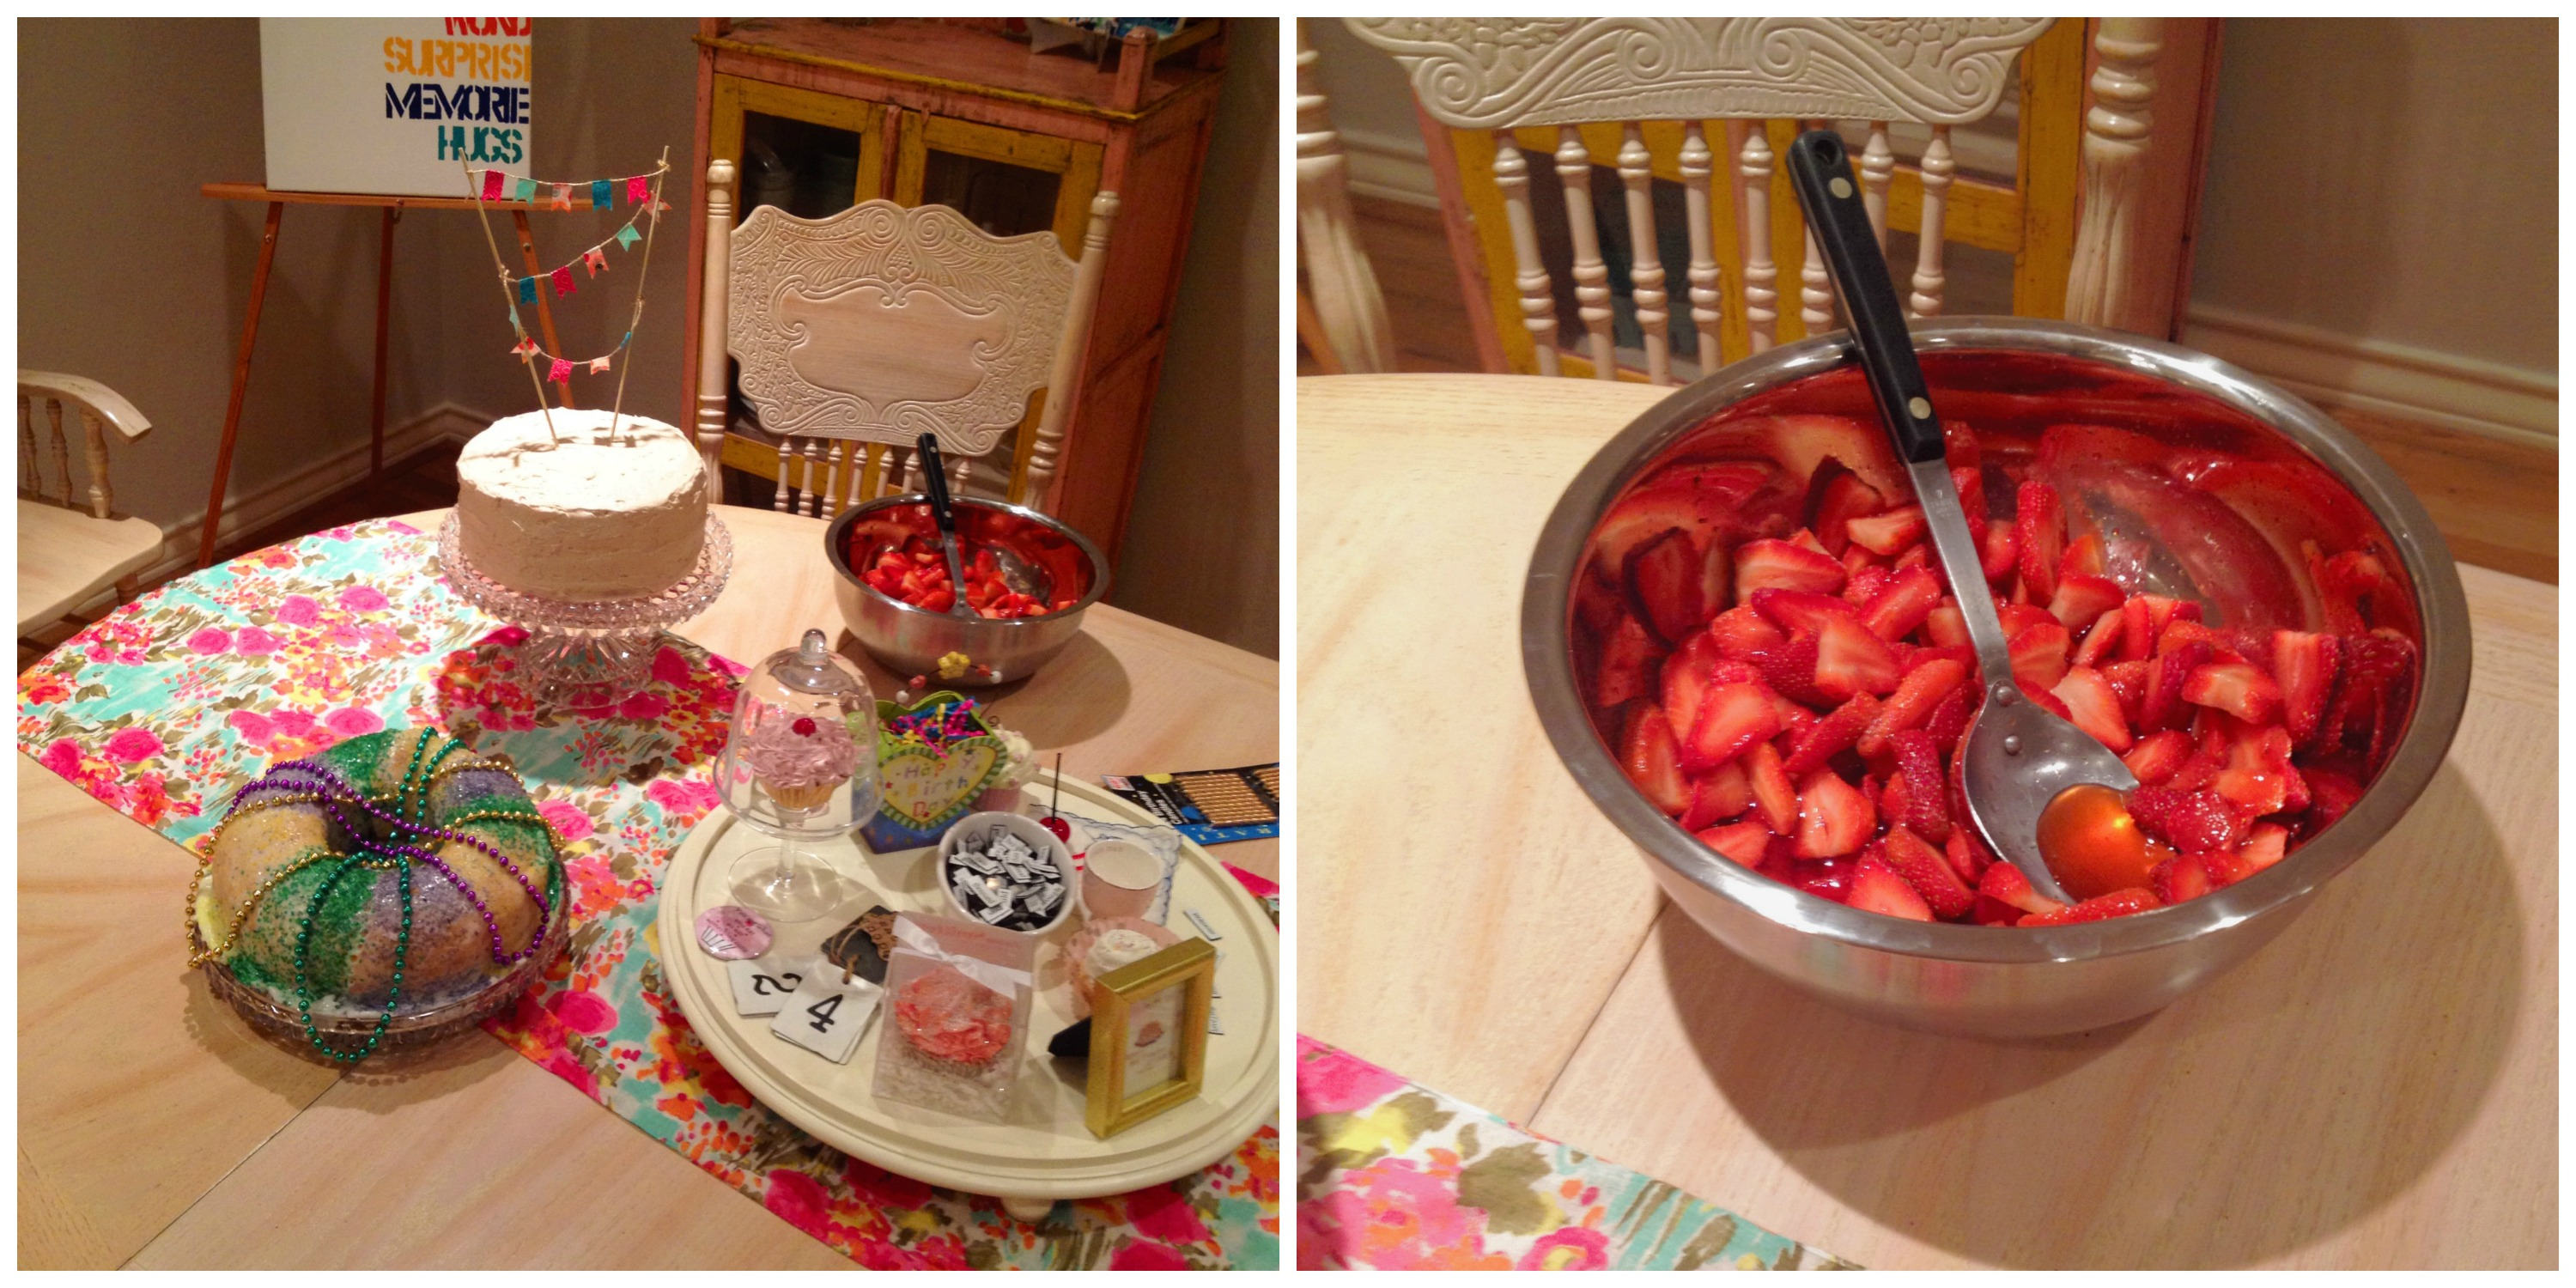 Strawberries + The Table